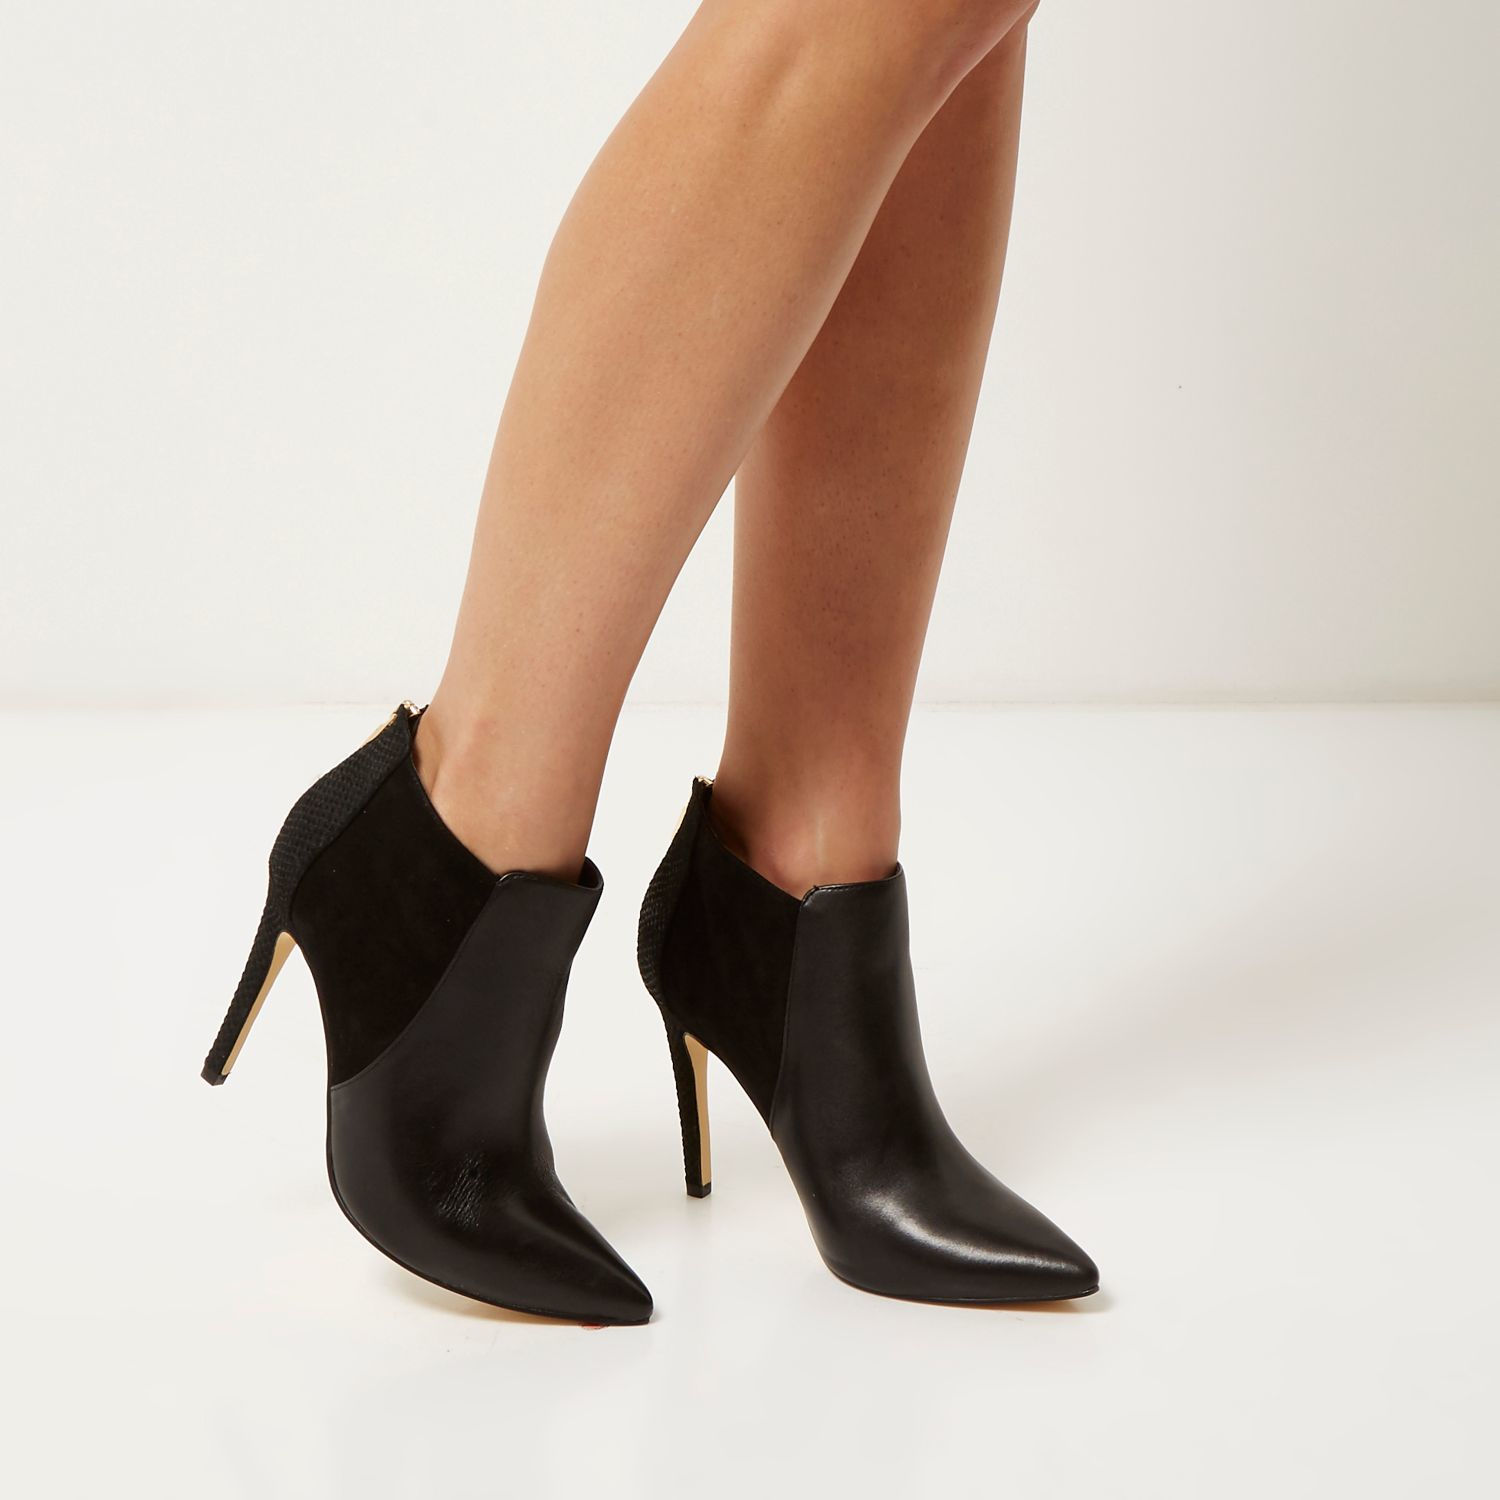 Black Block Heel Ankle Boots. £ Black Signature Comfort Lace-Up Boots. £ Black Casual Block Heel Boots. £ Charcoal Signature Comfort Pull On Ankle Boots. £ Grey Slouch Boots With Buckle Detail. £ Green Slouch Ankle Boots. £ Grey Casual Block Heel Boots. £ Navy Casual Block Heel Boots.